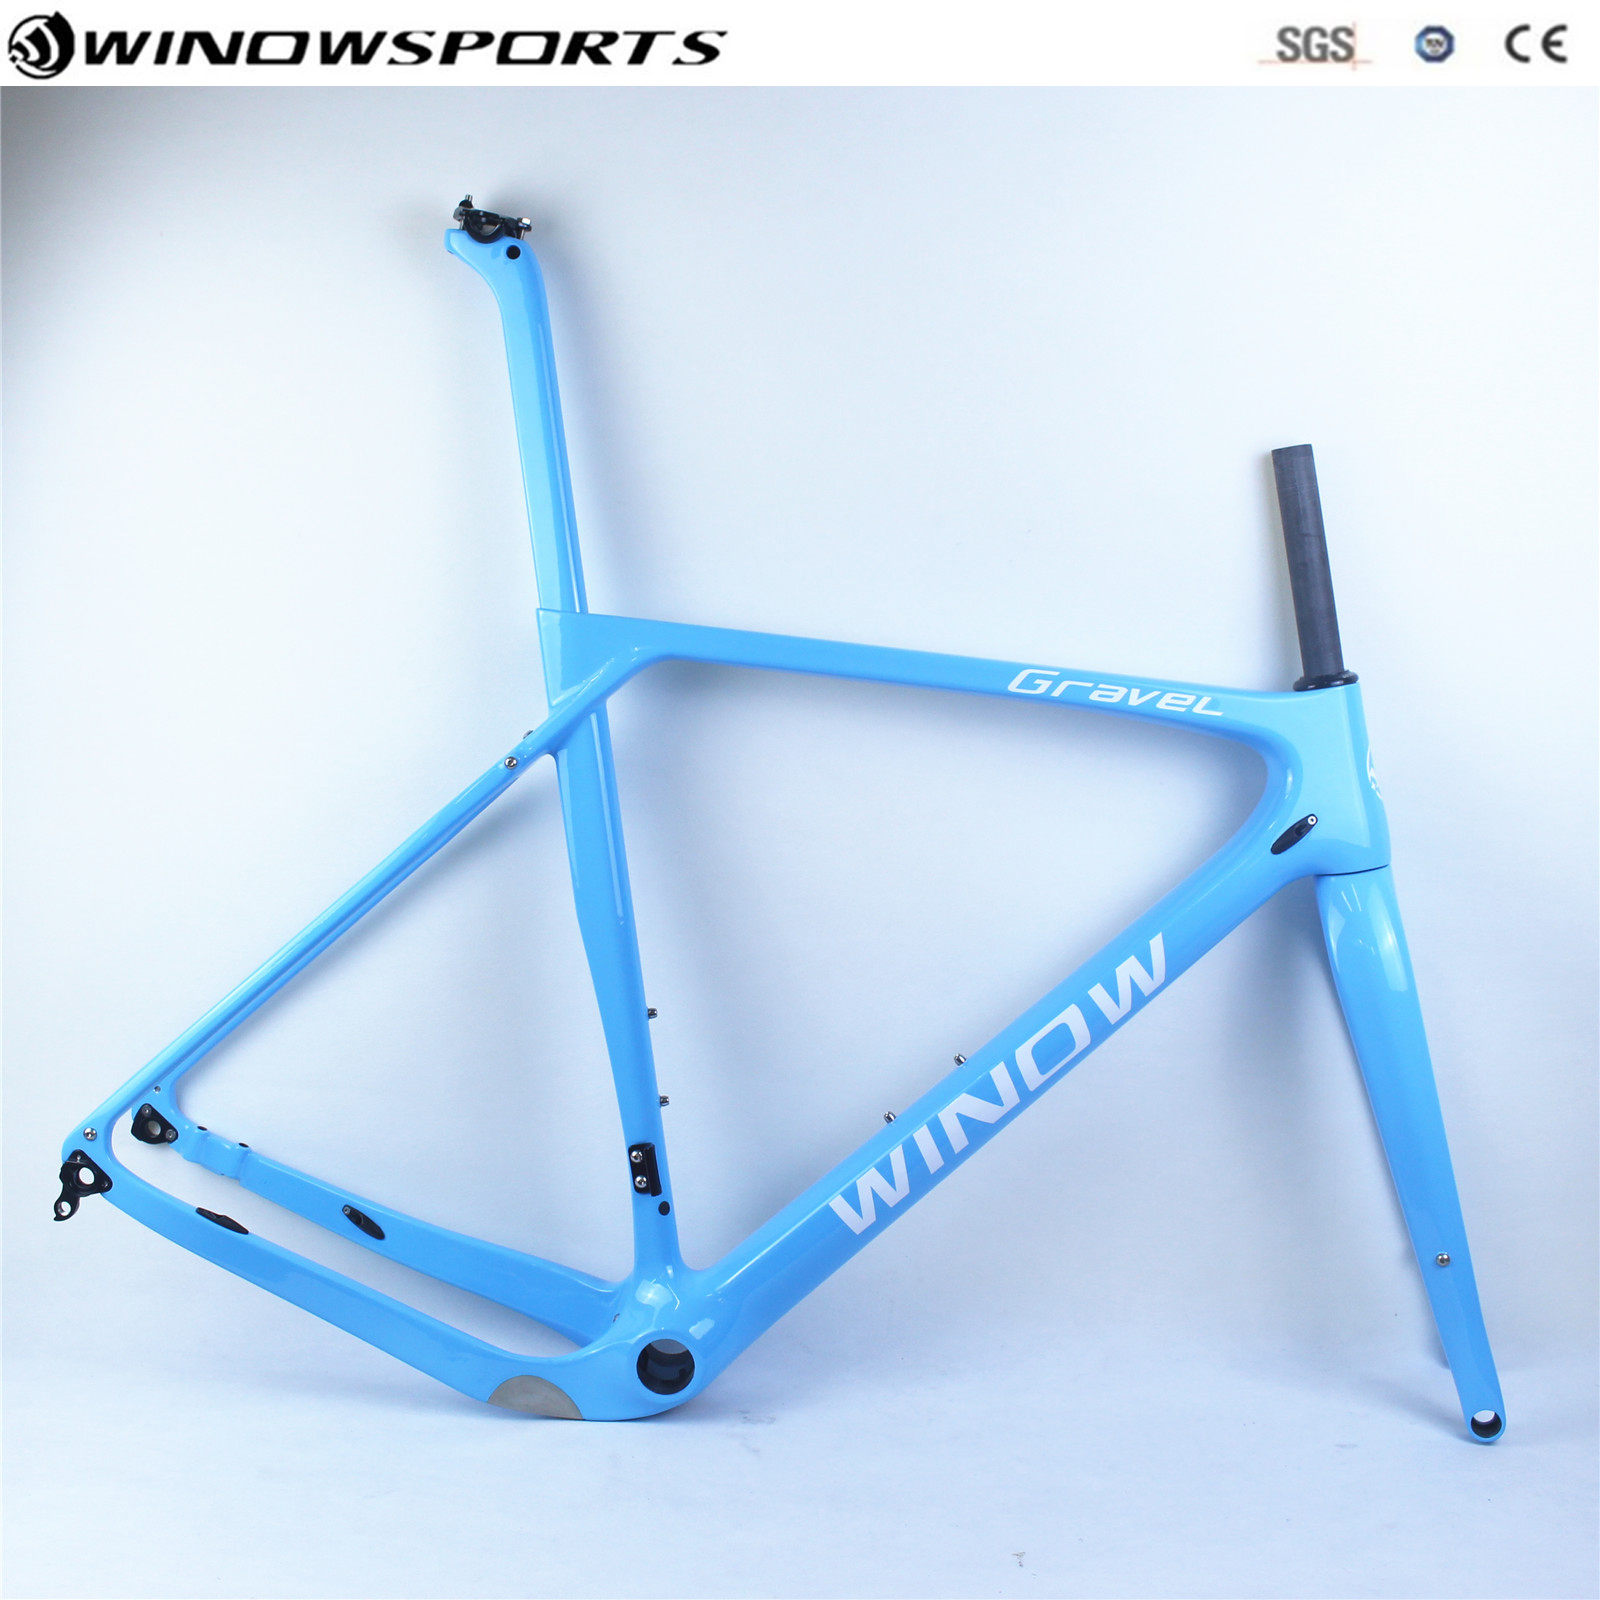 Full Carbon Gravel Bicycle Racing Frame Disc Brakes Thru Axle 142*12mm Cyclocross Carbon Gravel Frameset Size S/M/L/XL Available